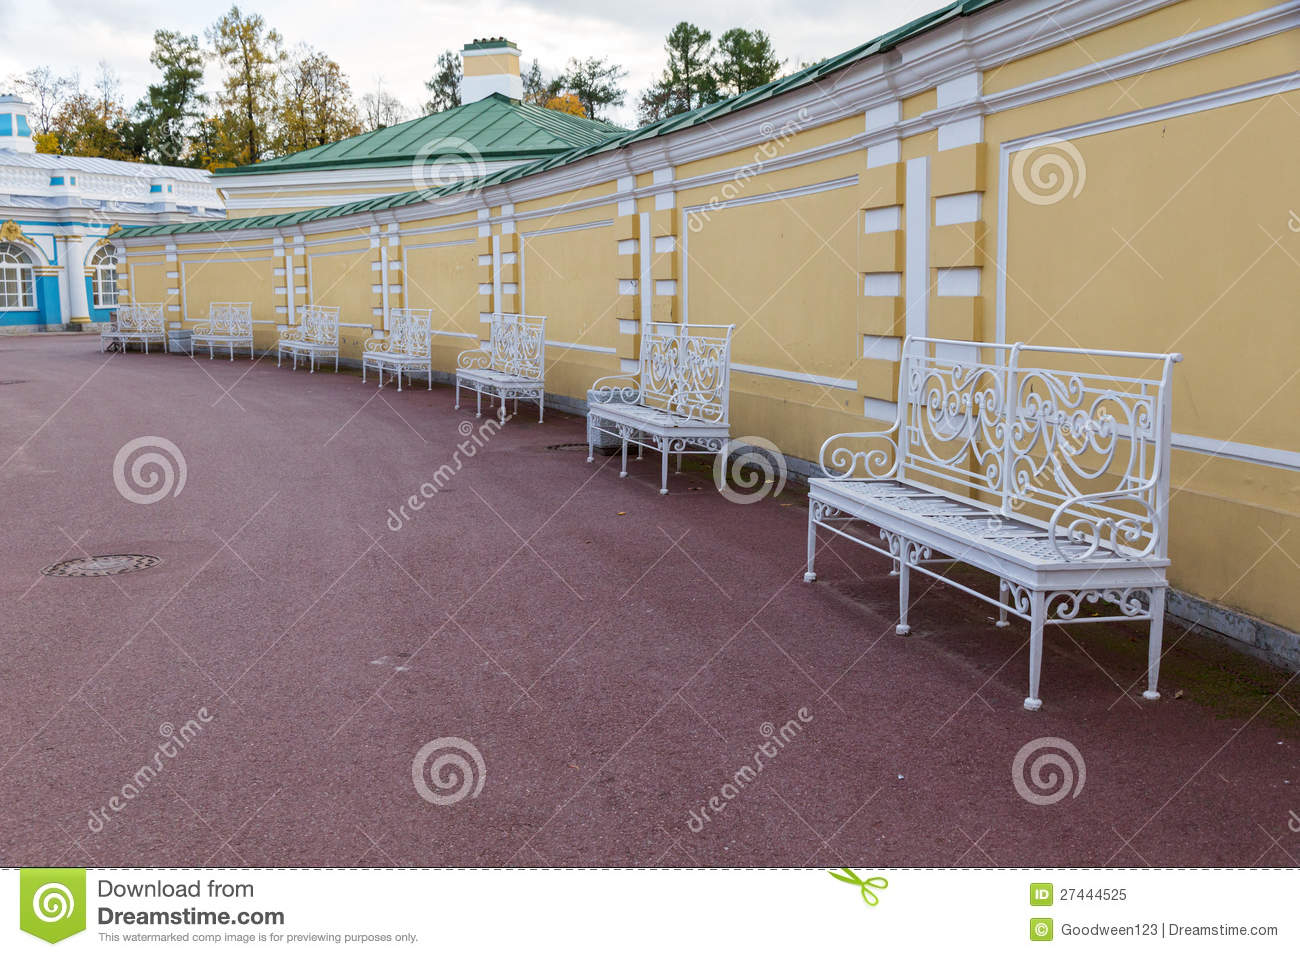 Empty Benches On A Sidewalk Royalty Free Stock Photo - Image: 27444525